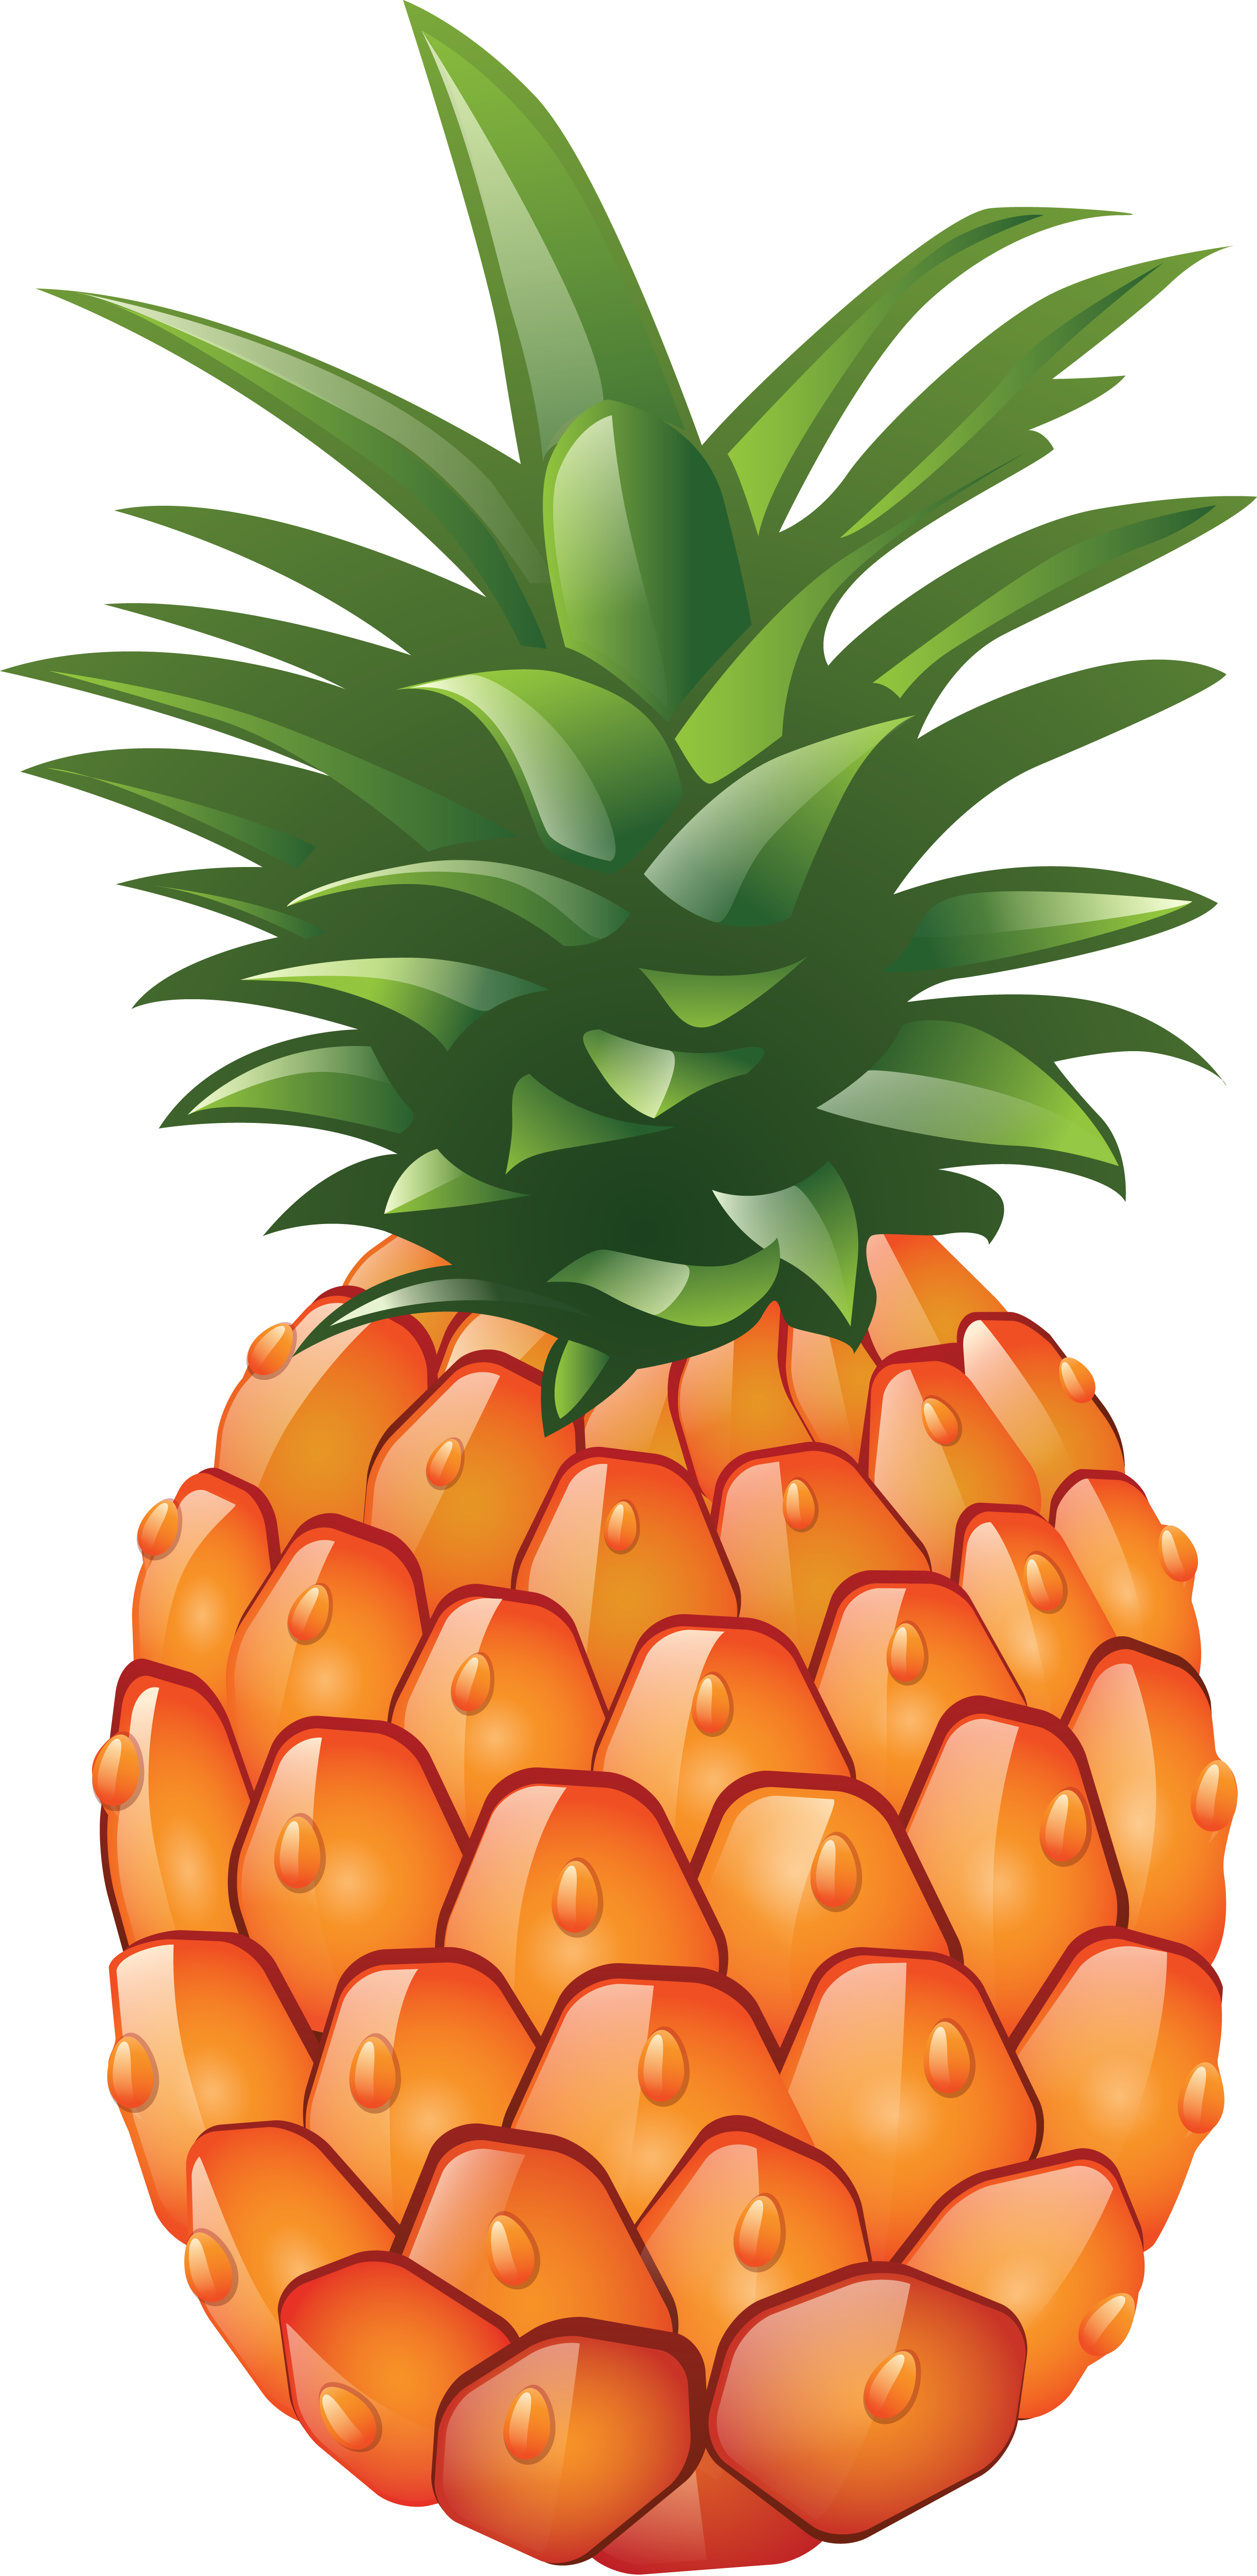 Ananas clipart png clip art royalty free library Pin by ☆ Agatka ☆ on cliparts ... | Hawaiian party decorations ... clip art royalty free library